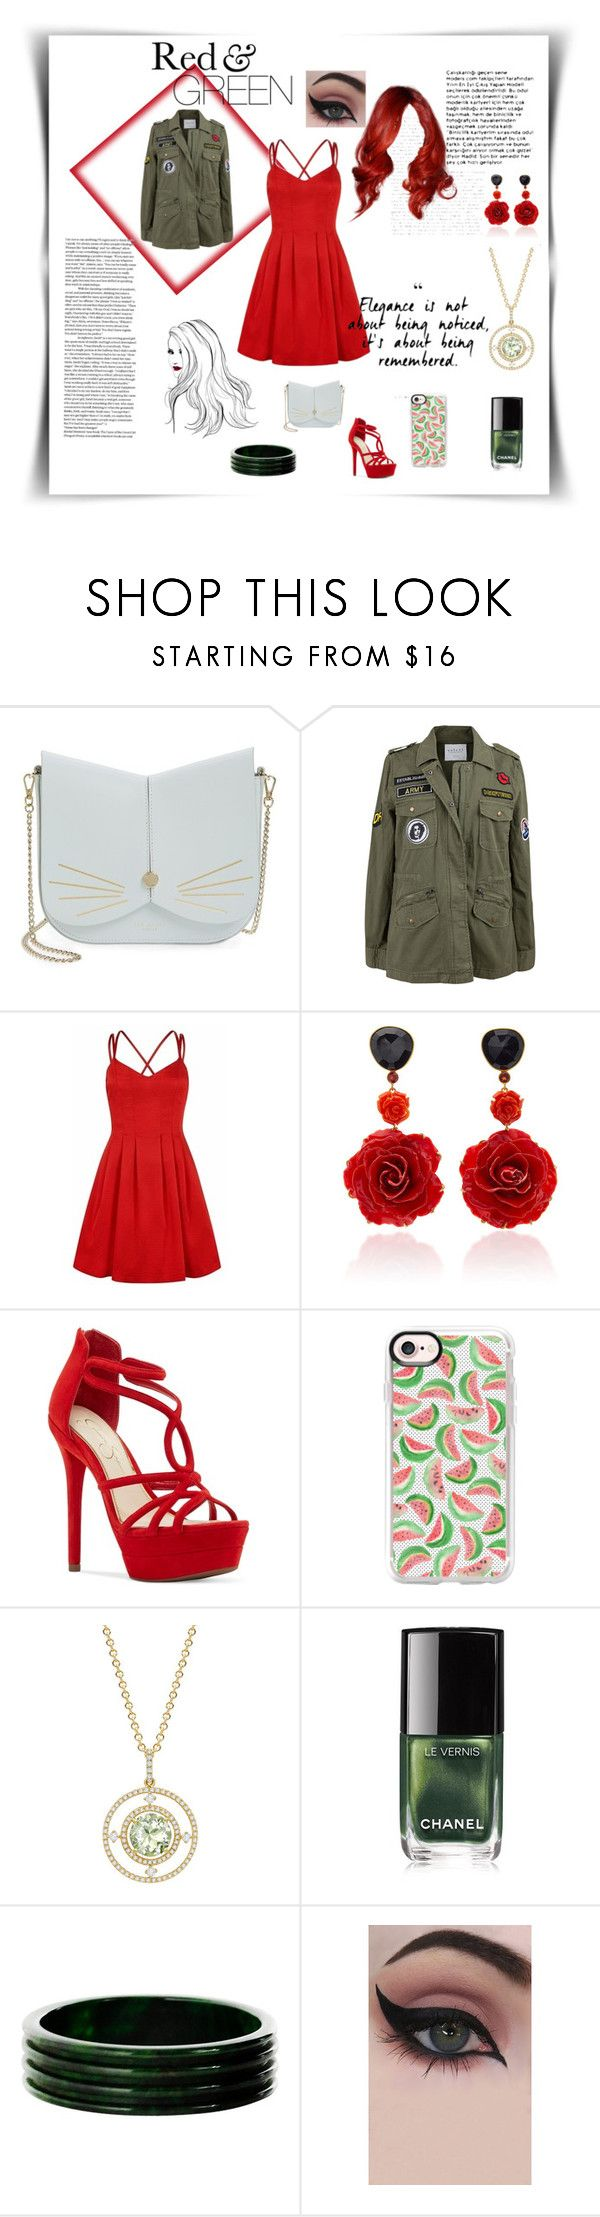 """Red and green contest"" by lizenn-annah-binet ❤ liked on Polyvore featuring Ted Baker, Velvet by Graham & Spencer, Bahina, Jessica Simpson, Casetify, Kiki mcdonough, Chanel and Concrete Minerals"